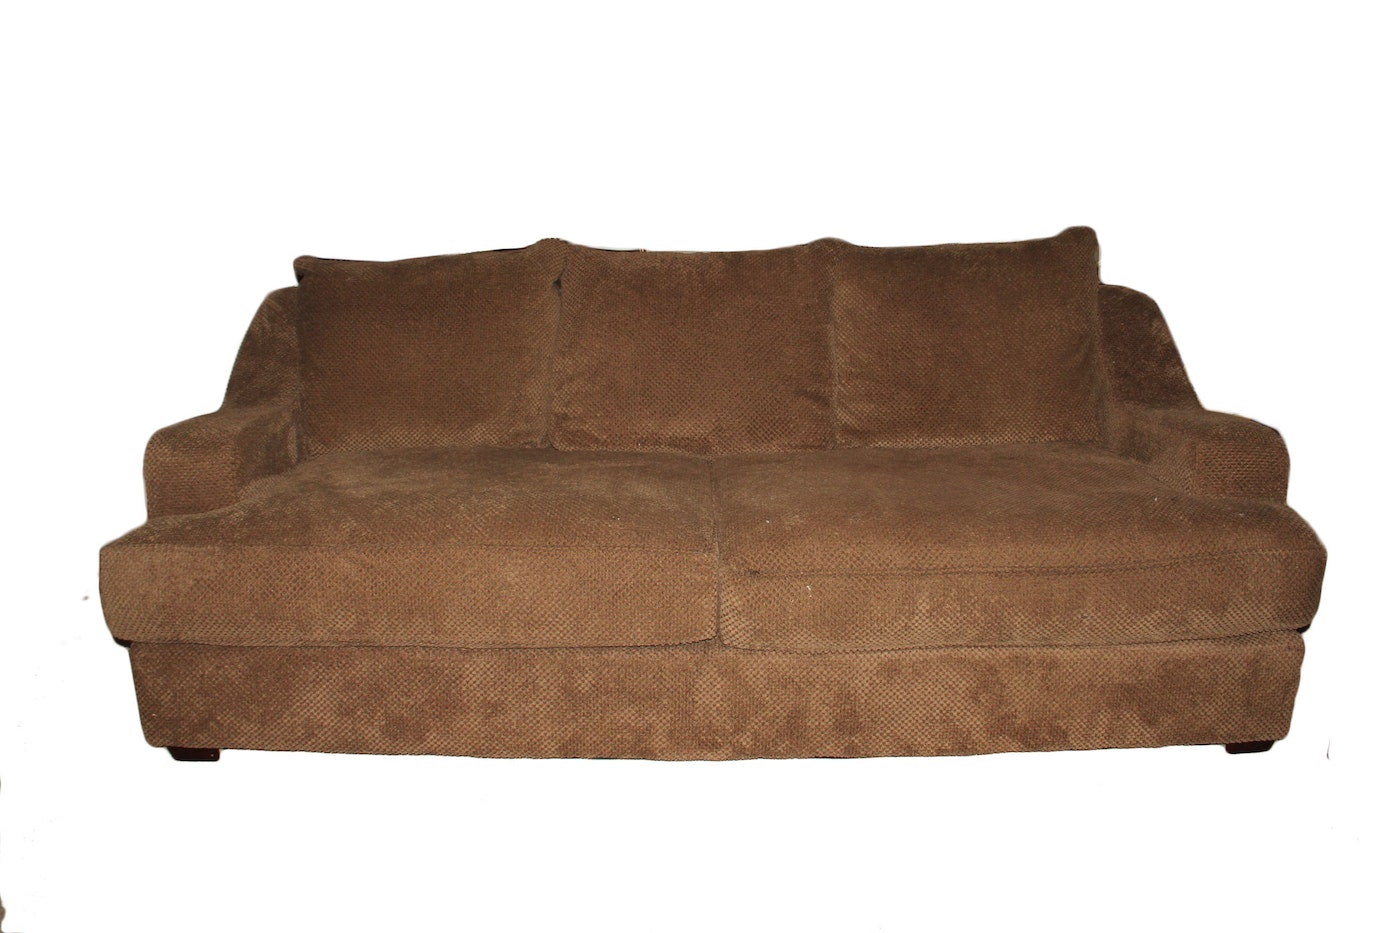 Throw Pillows For Dark Green Sofa : Dark Beige Textured Upholstered Sofa with Throw Pillows : EBTH